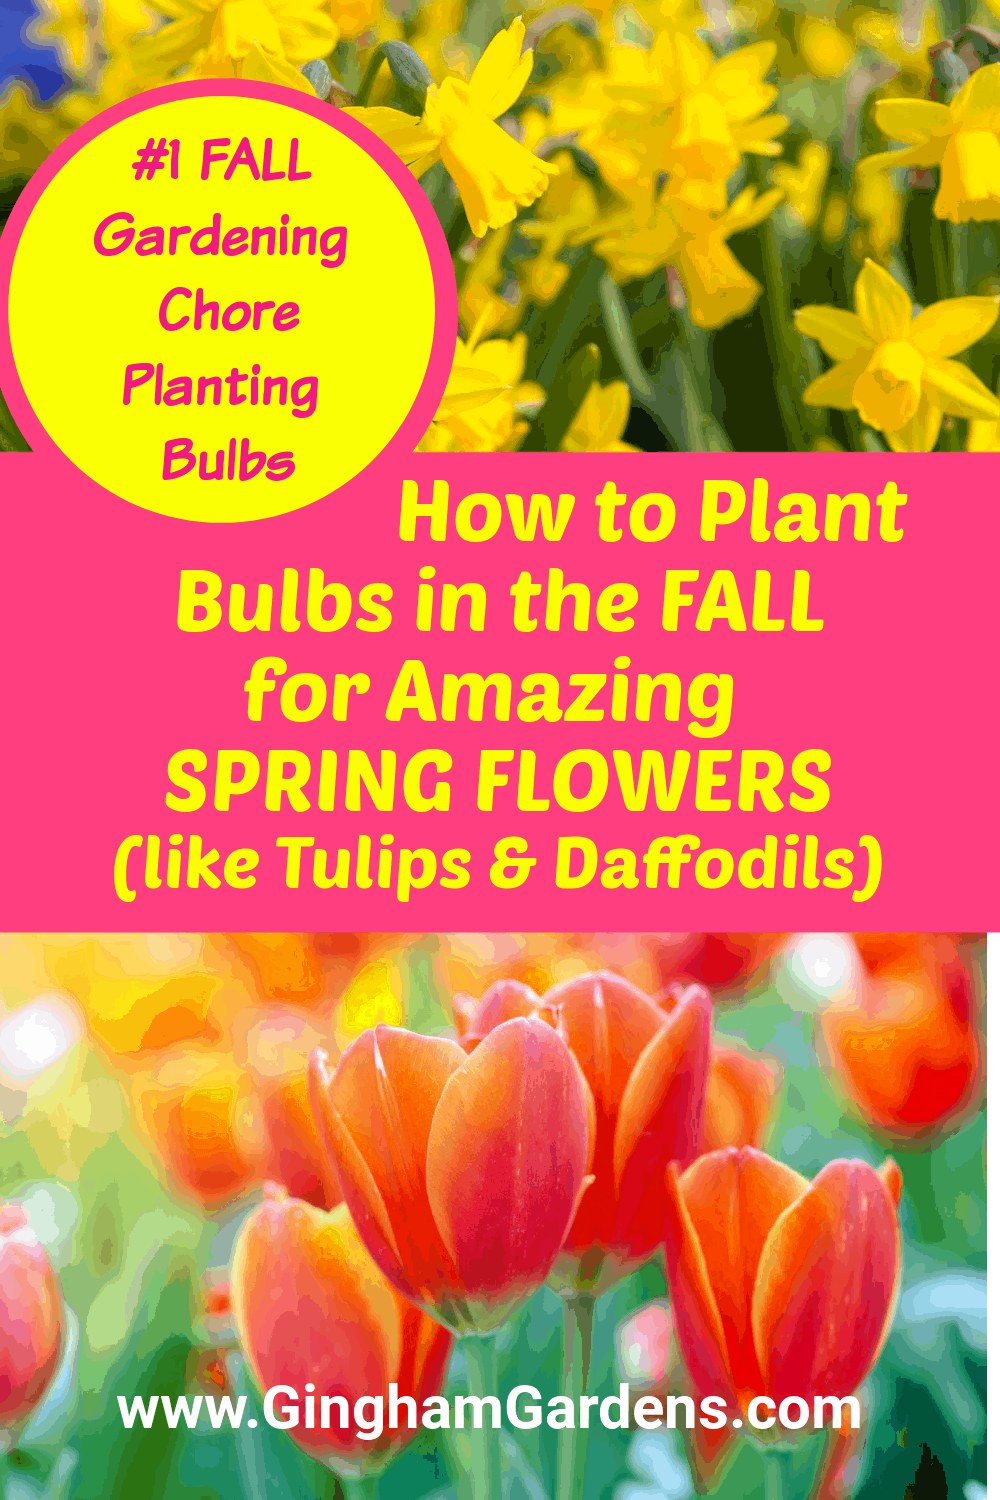 Images of Spring Flowers with text overlay - How to Plant Bulbs in the Fall for Amazing Spring Flowers